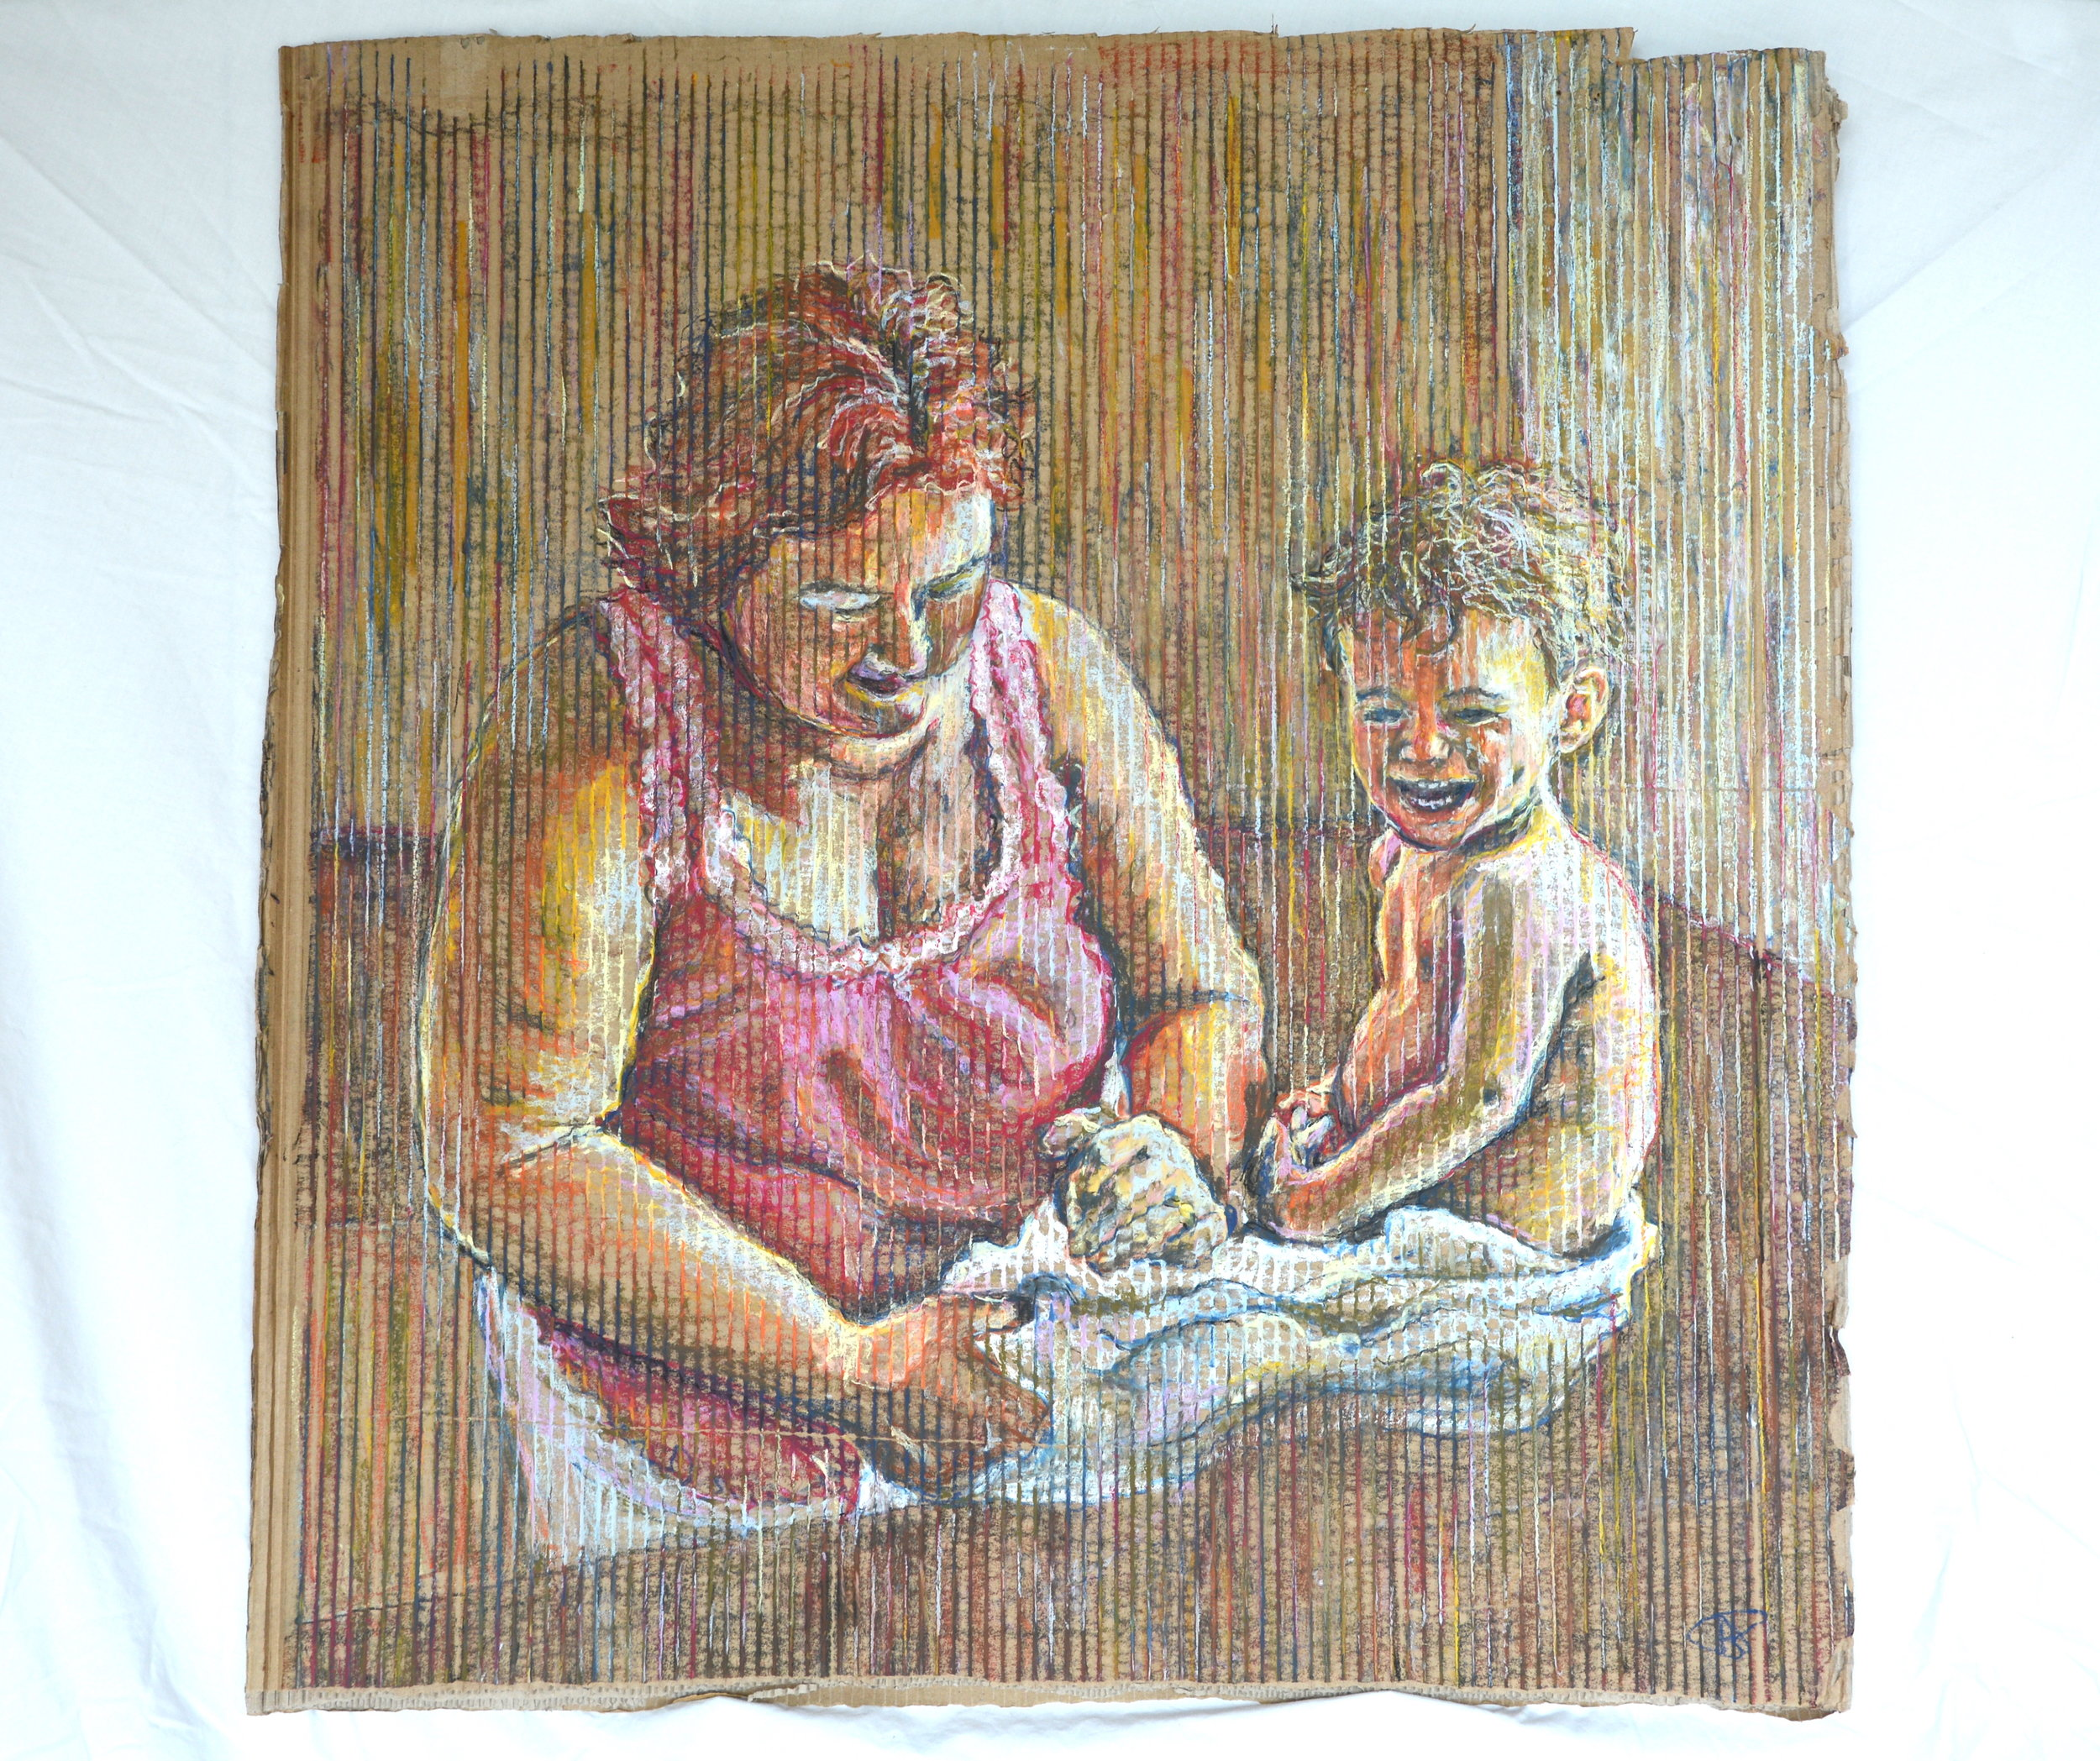 'Kitchen Sink Bath' Oil pastel on corrugated cardboard